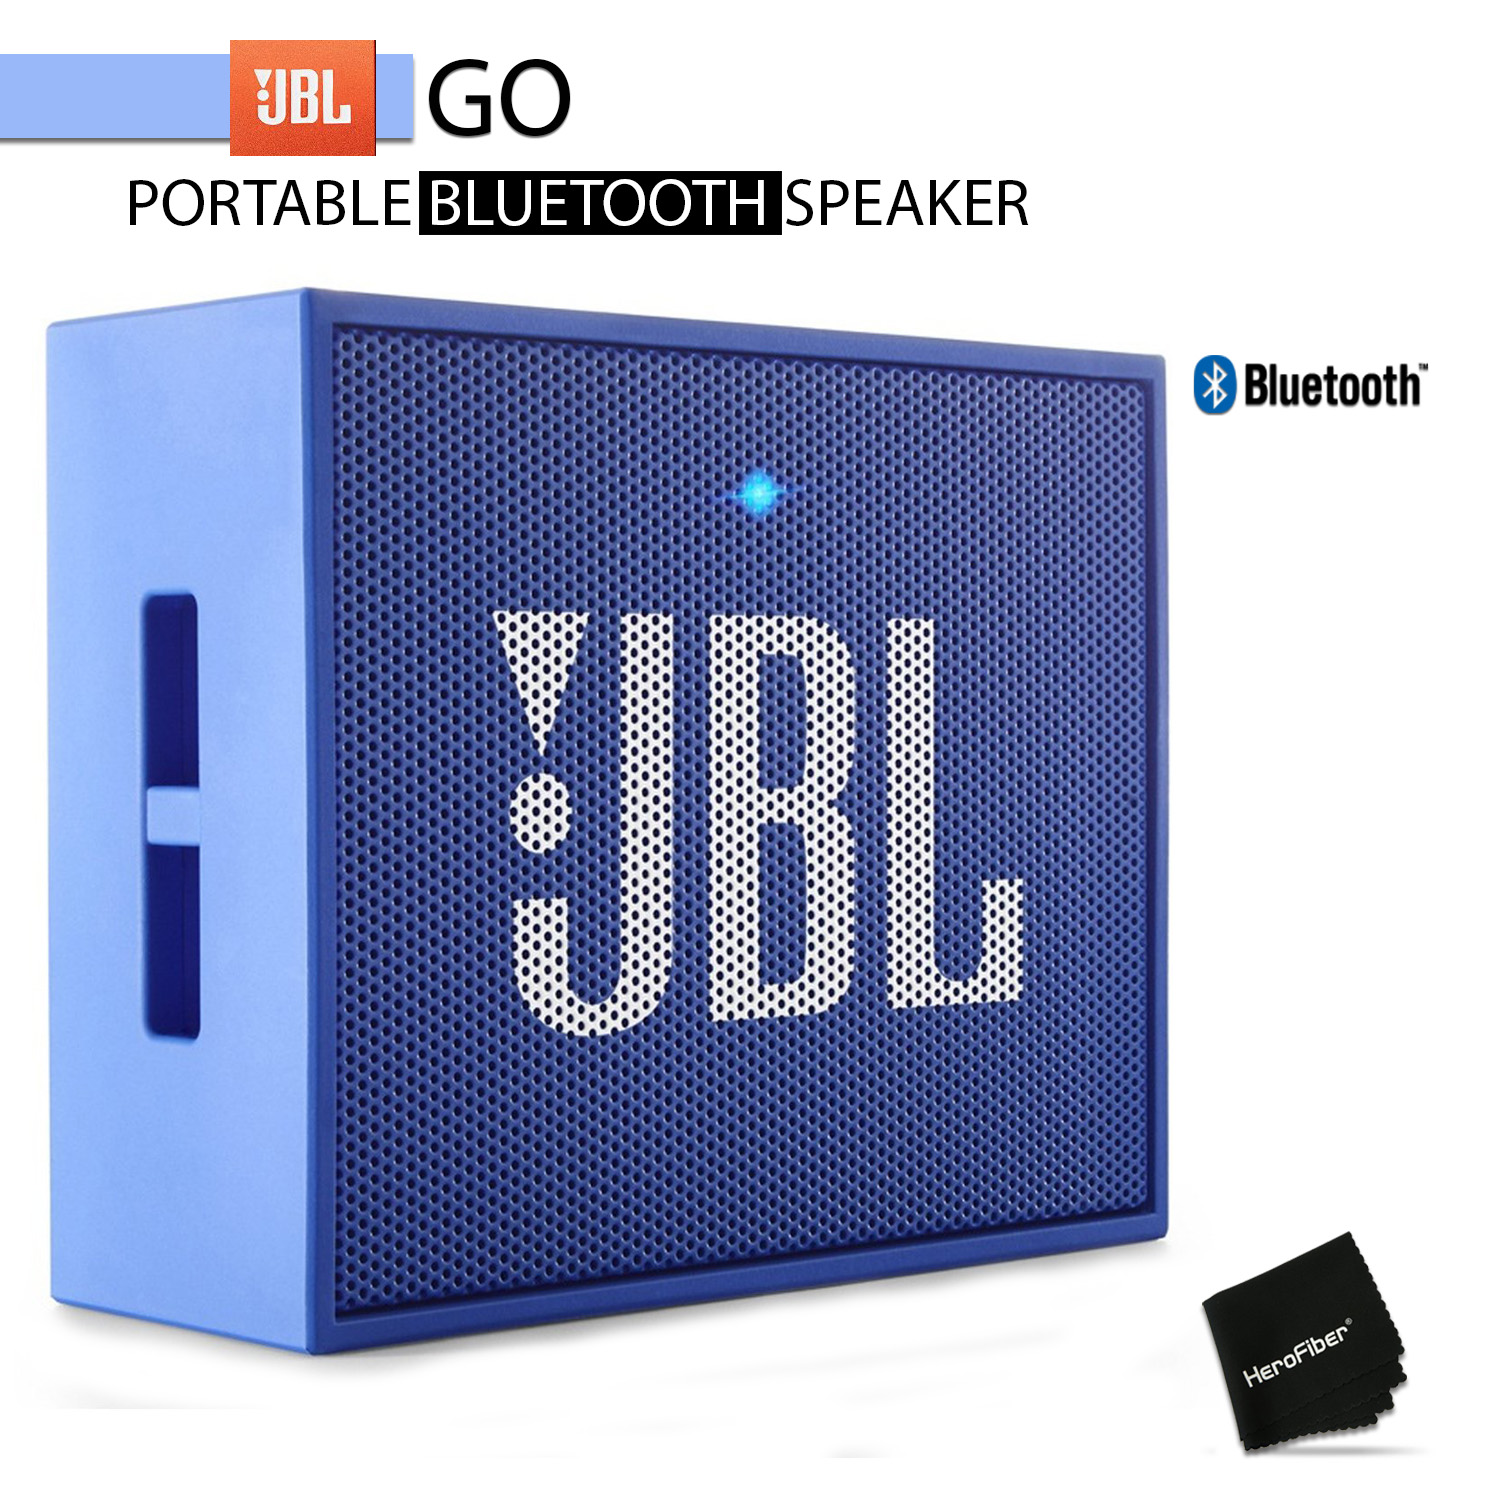 JBL GO Portable Bluetooth Speaker (Blue) w/ Rechargeable Battery and Built in